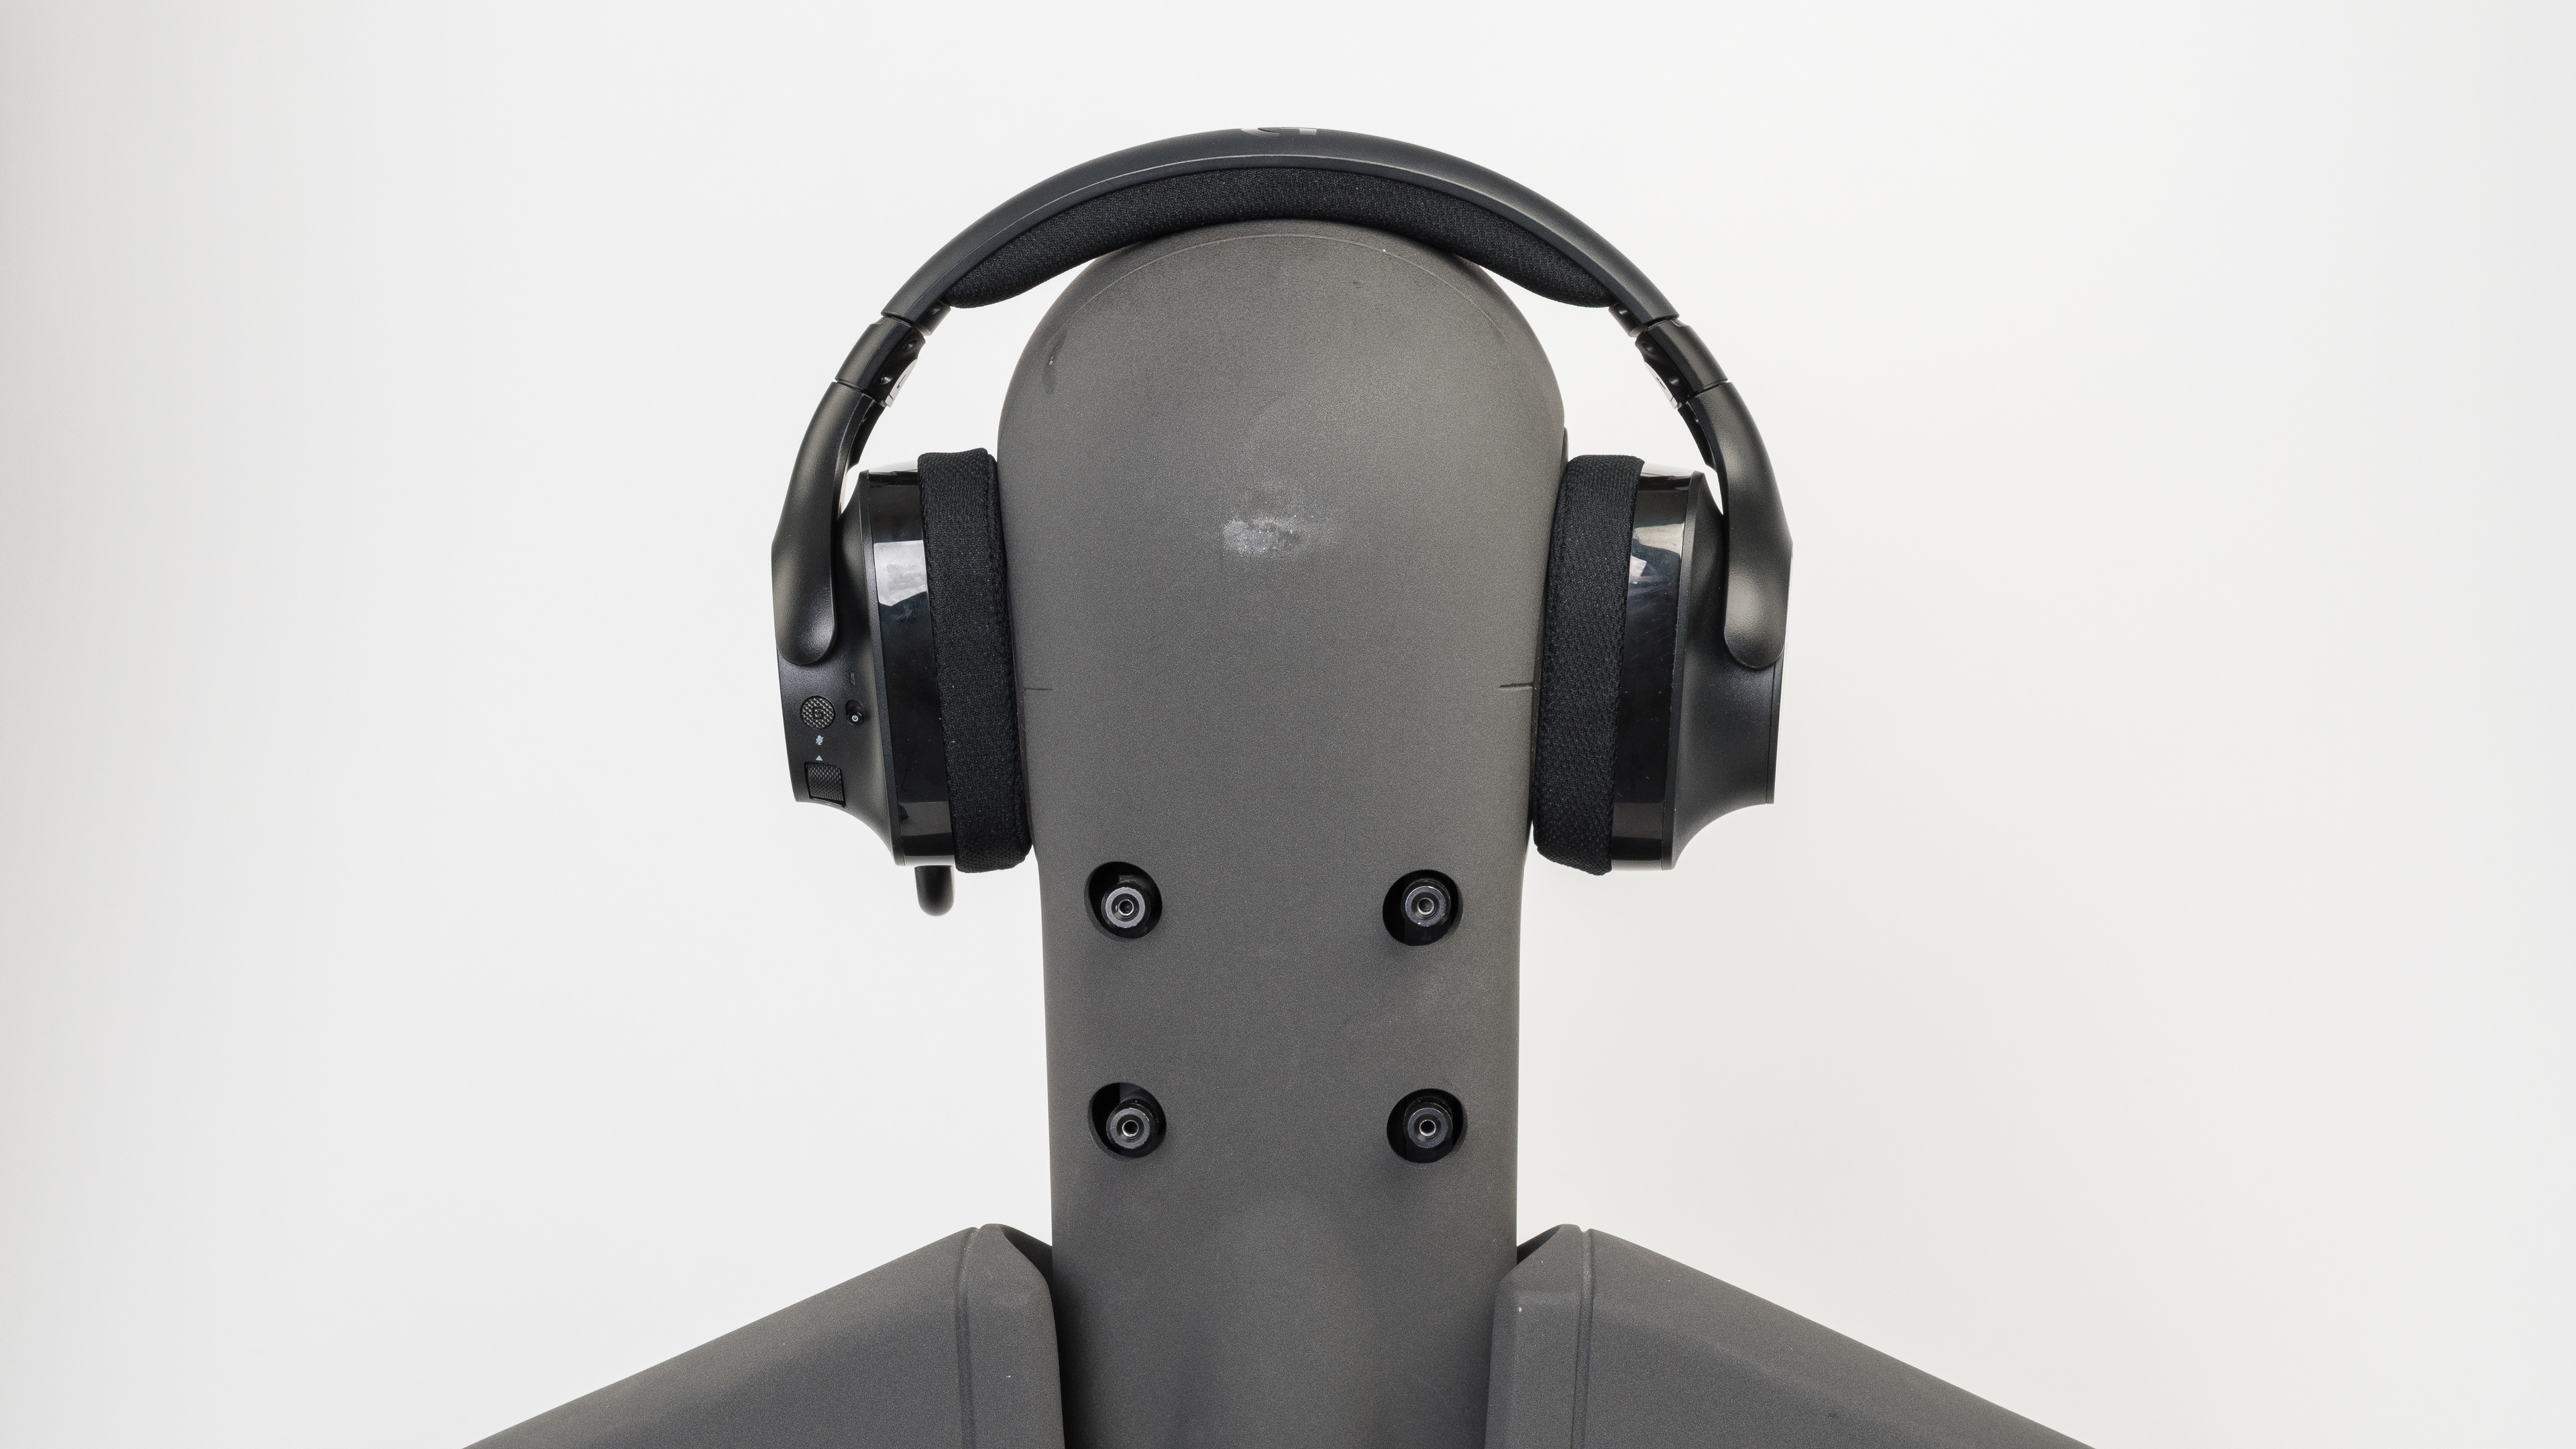 Logitech G533 Wireless Gaming Headset Review - RTINGS.com